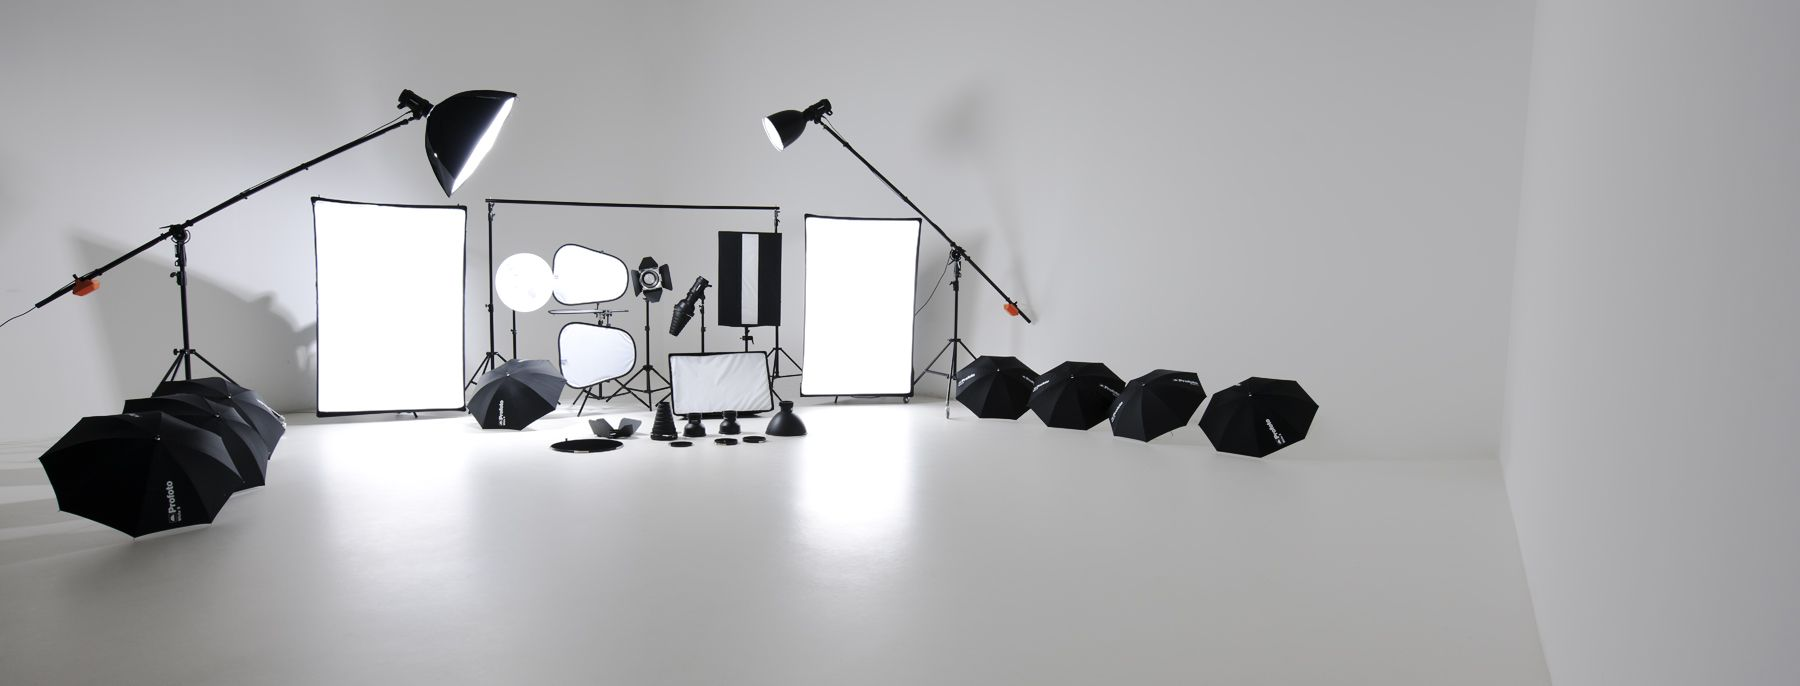 studio with photo stock picture and photography setup lighting equipment